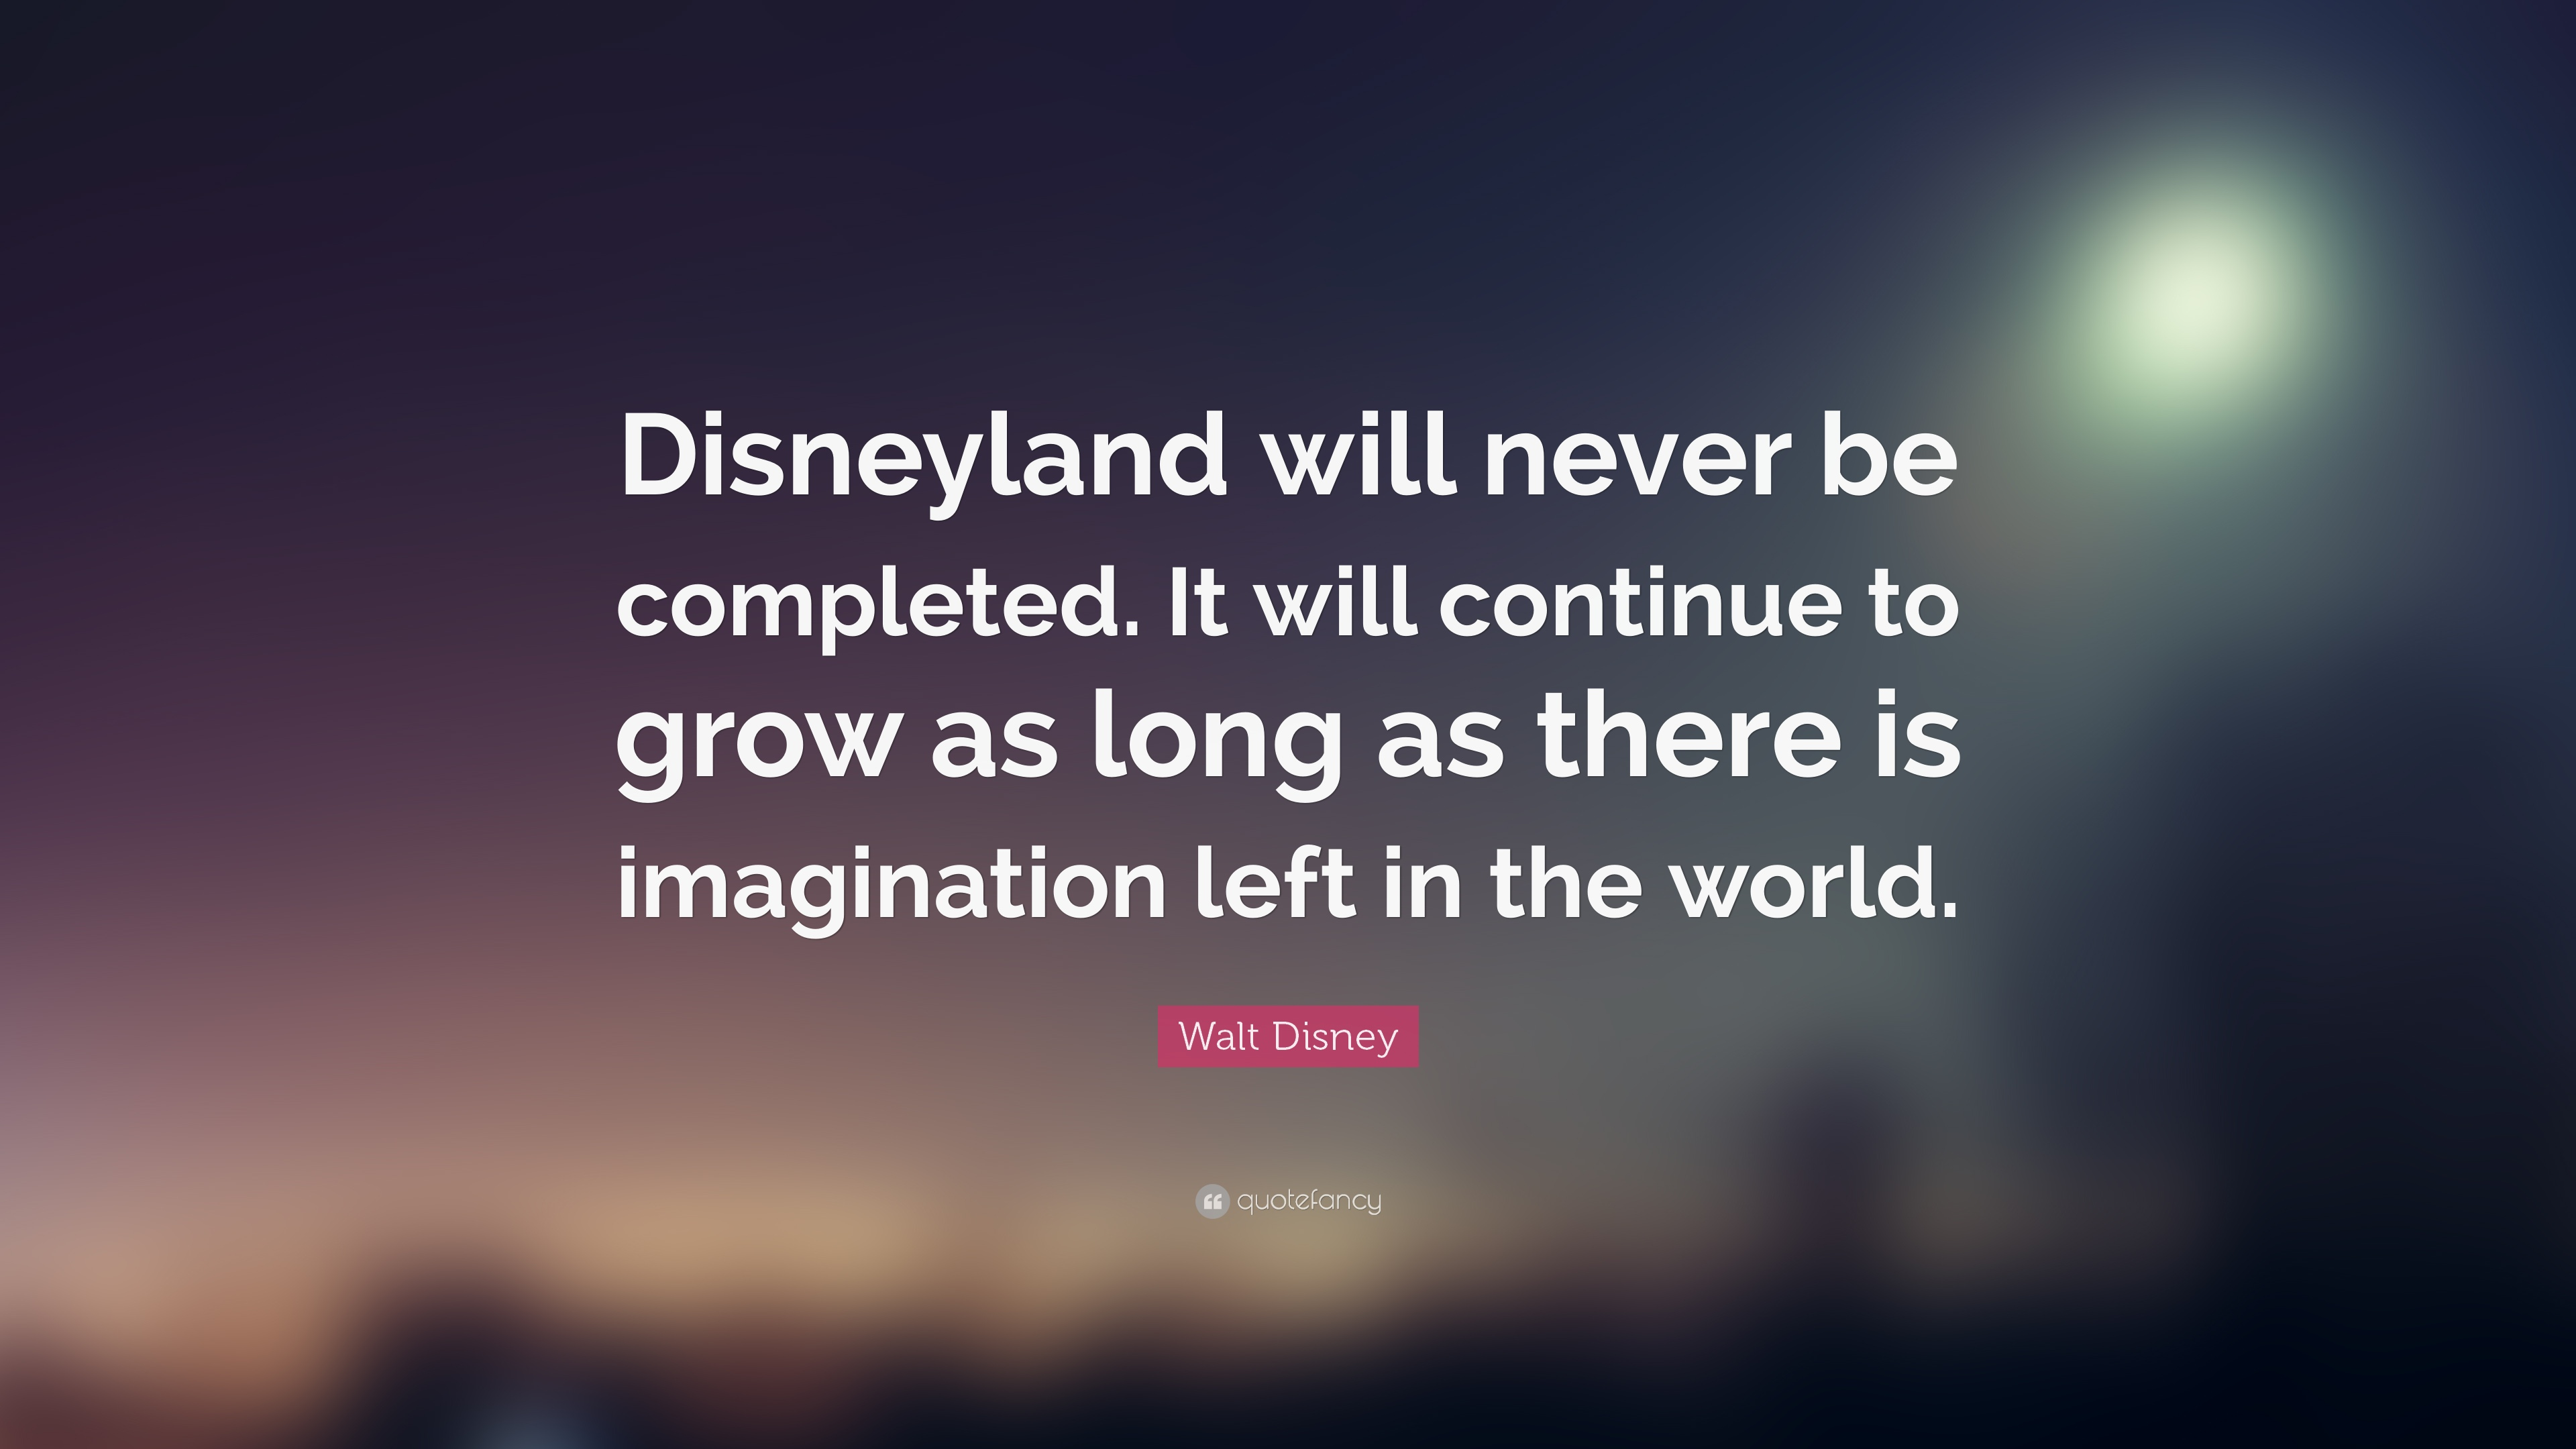 walt disney quote disneyland will never be completed it will continue to grow